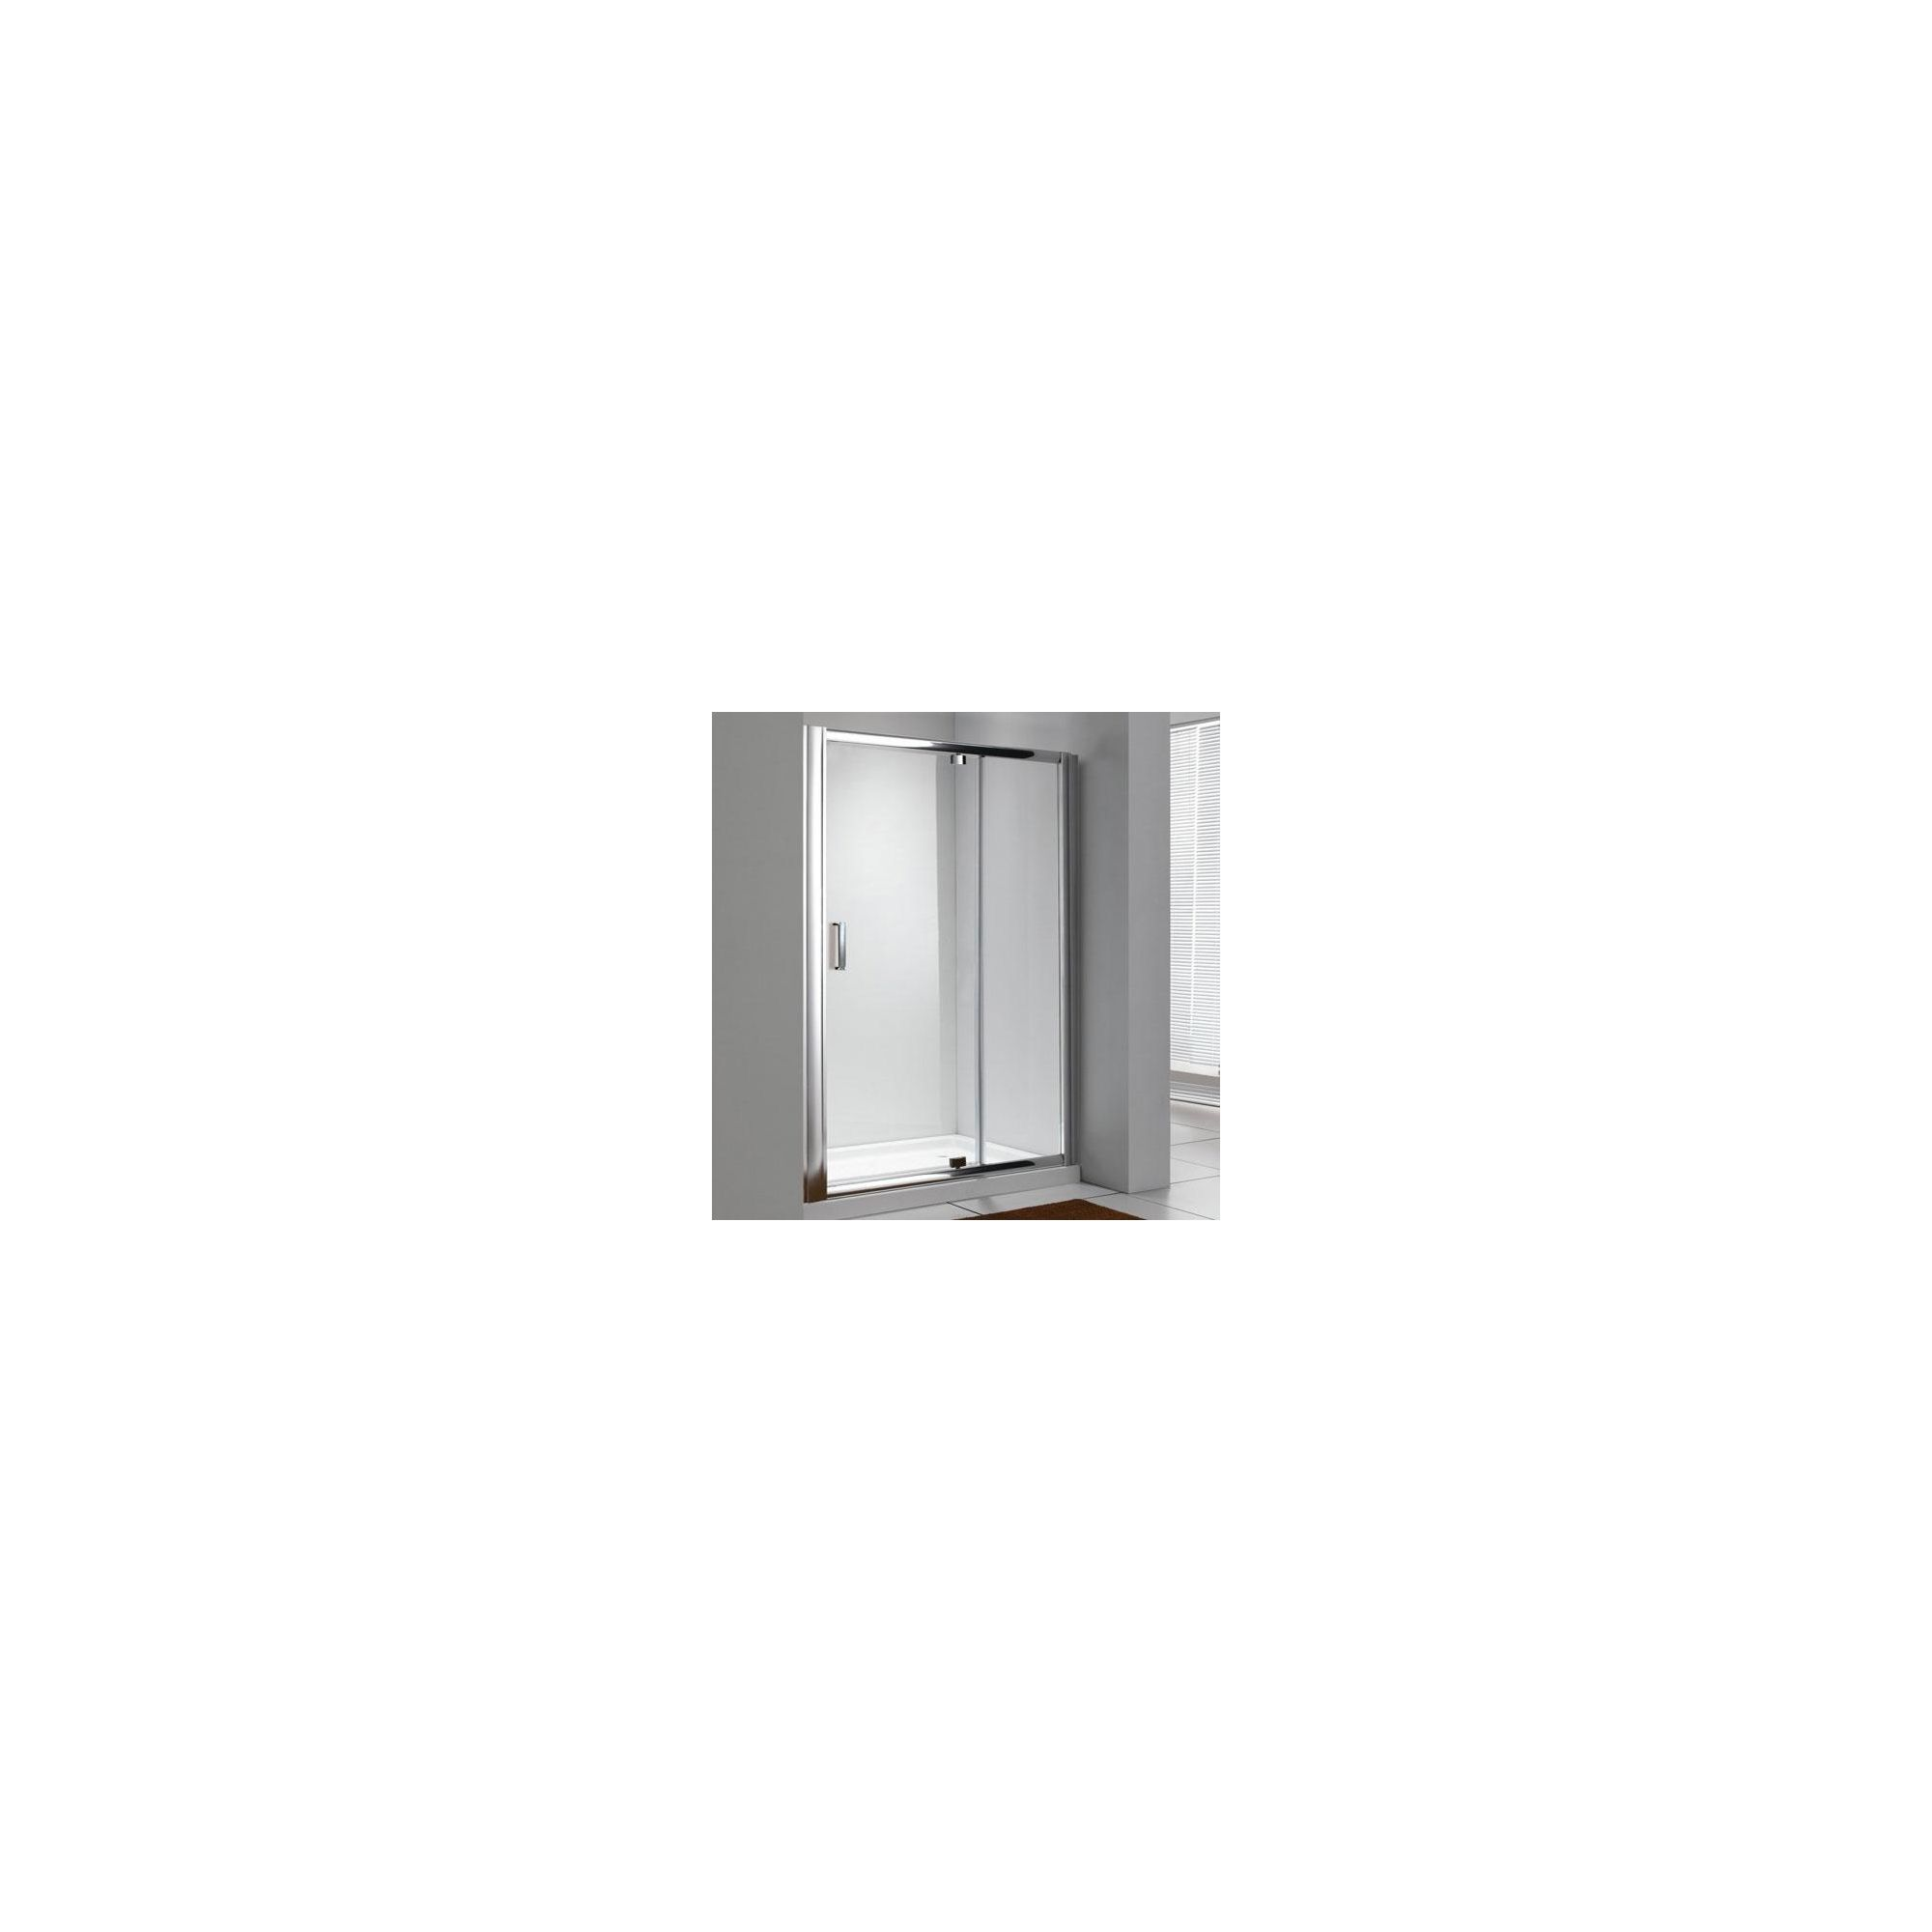 Duchy Style Pivot Door Shower Enclosure, 800mm x 760mm, 6mm Glass, Low Profile Tray at Tesco Direct